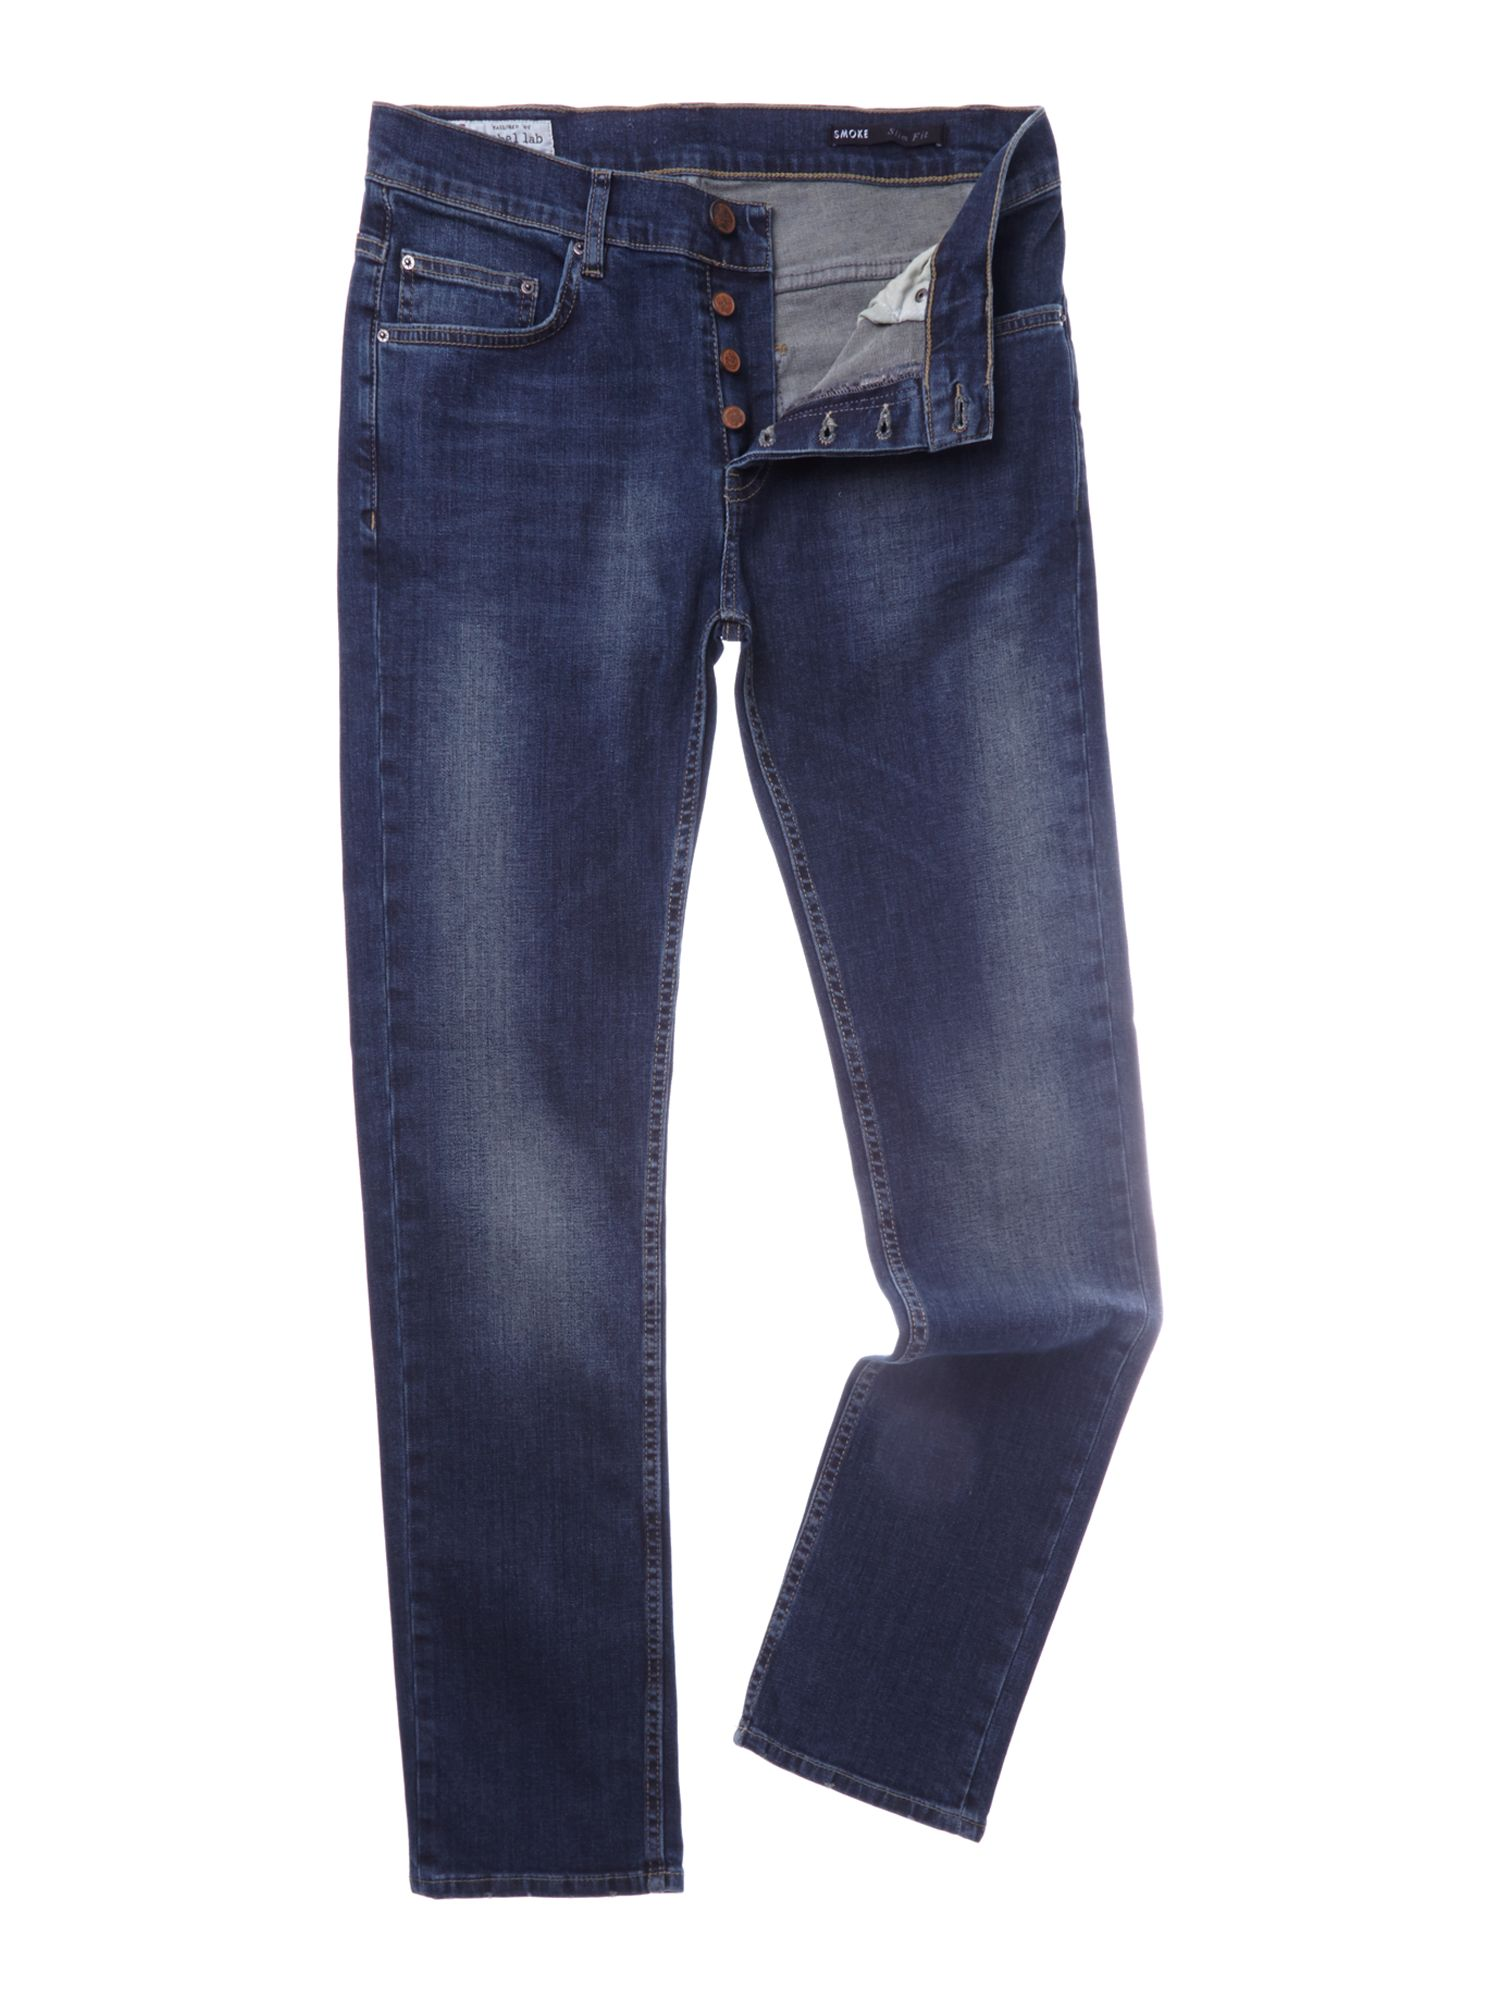 Slim fit denim jean